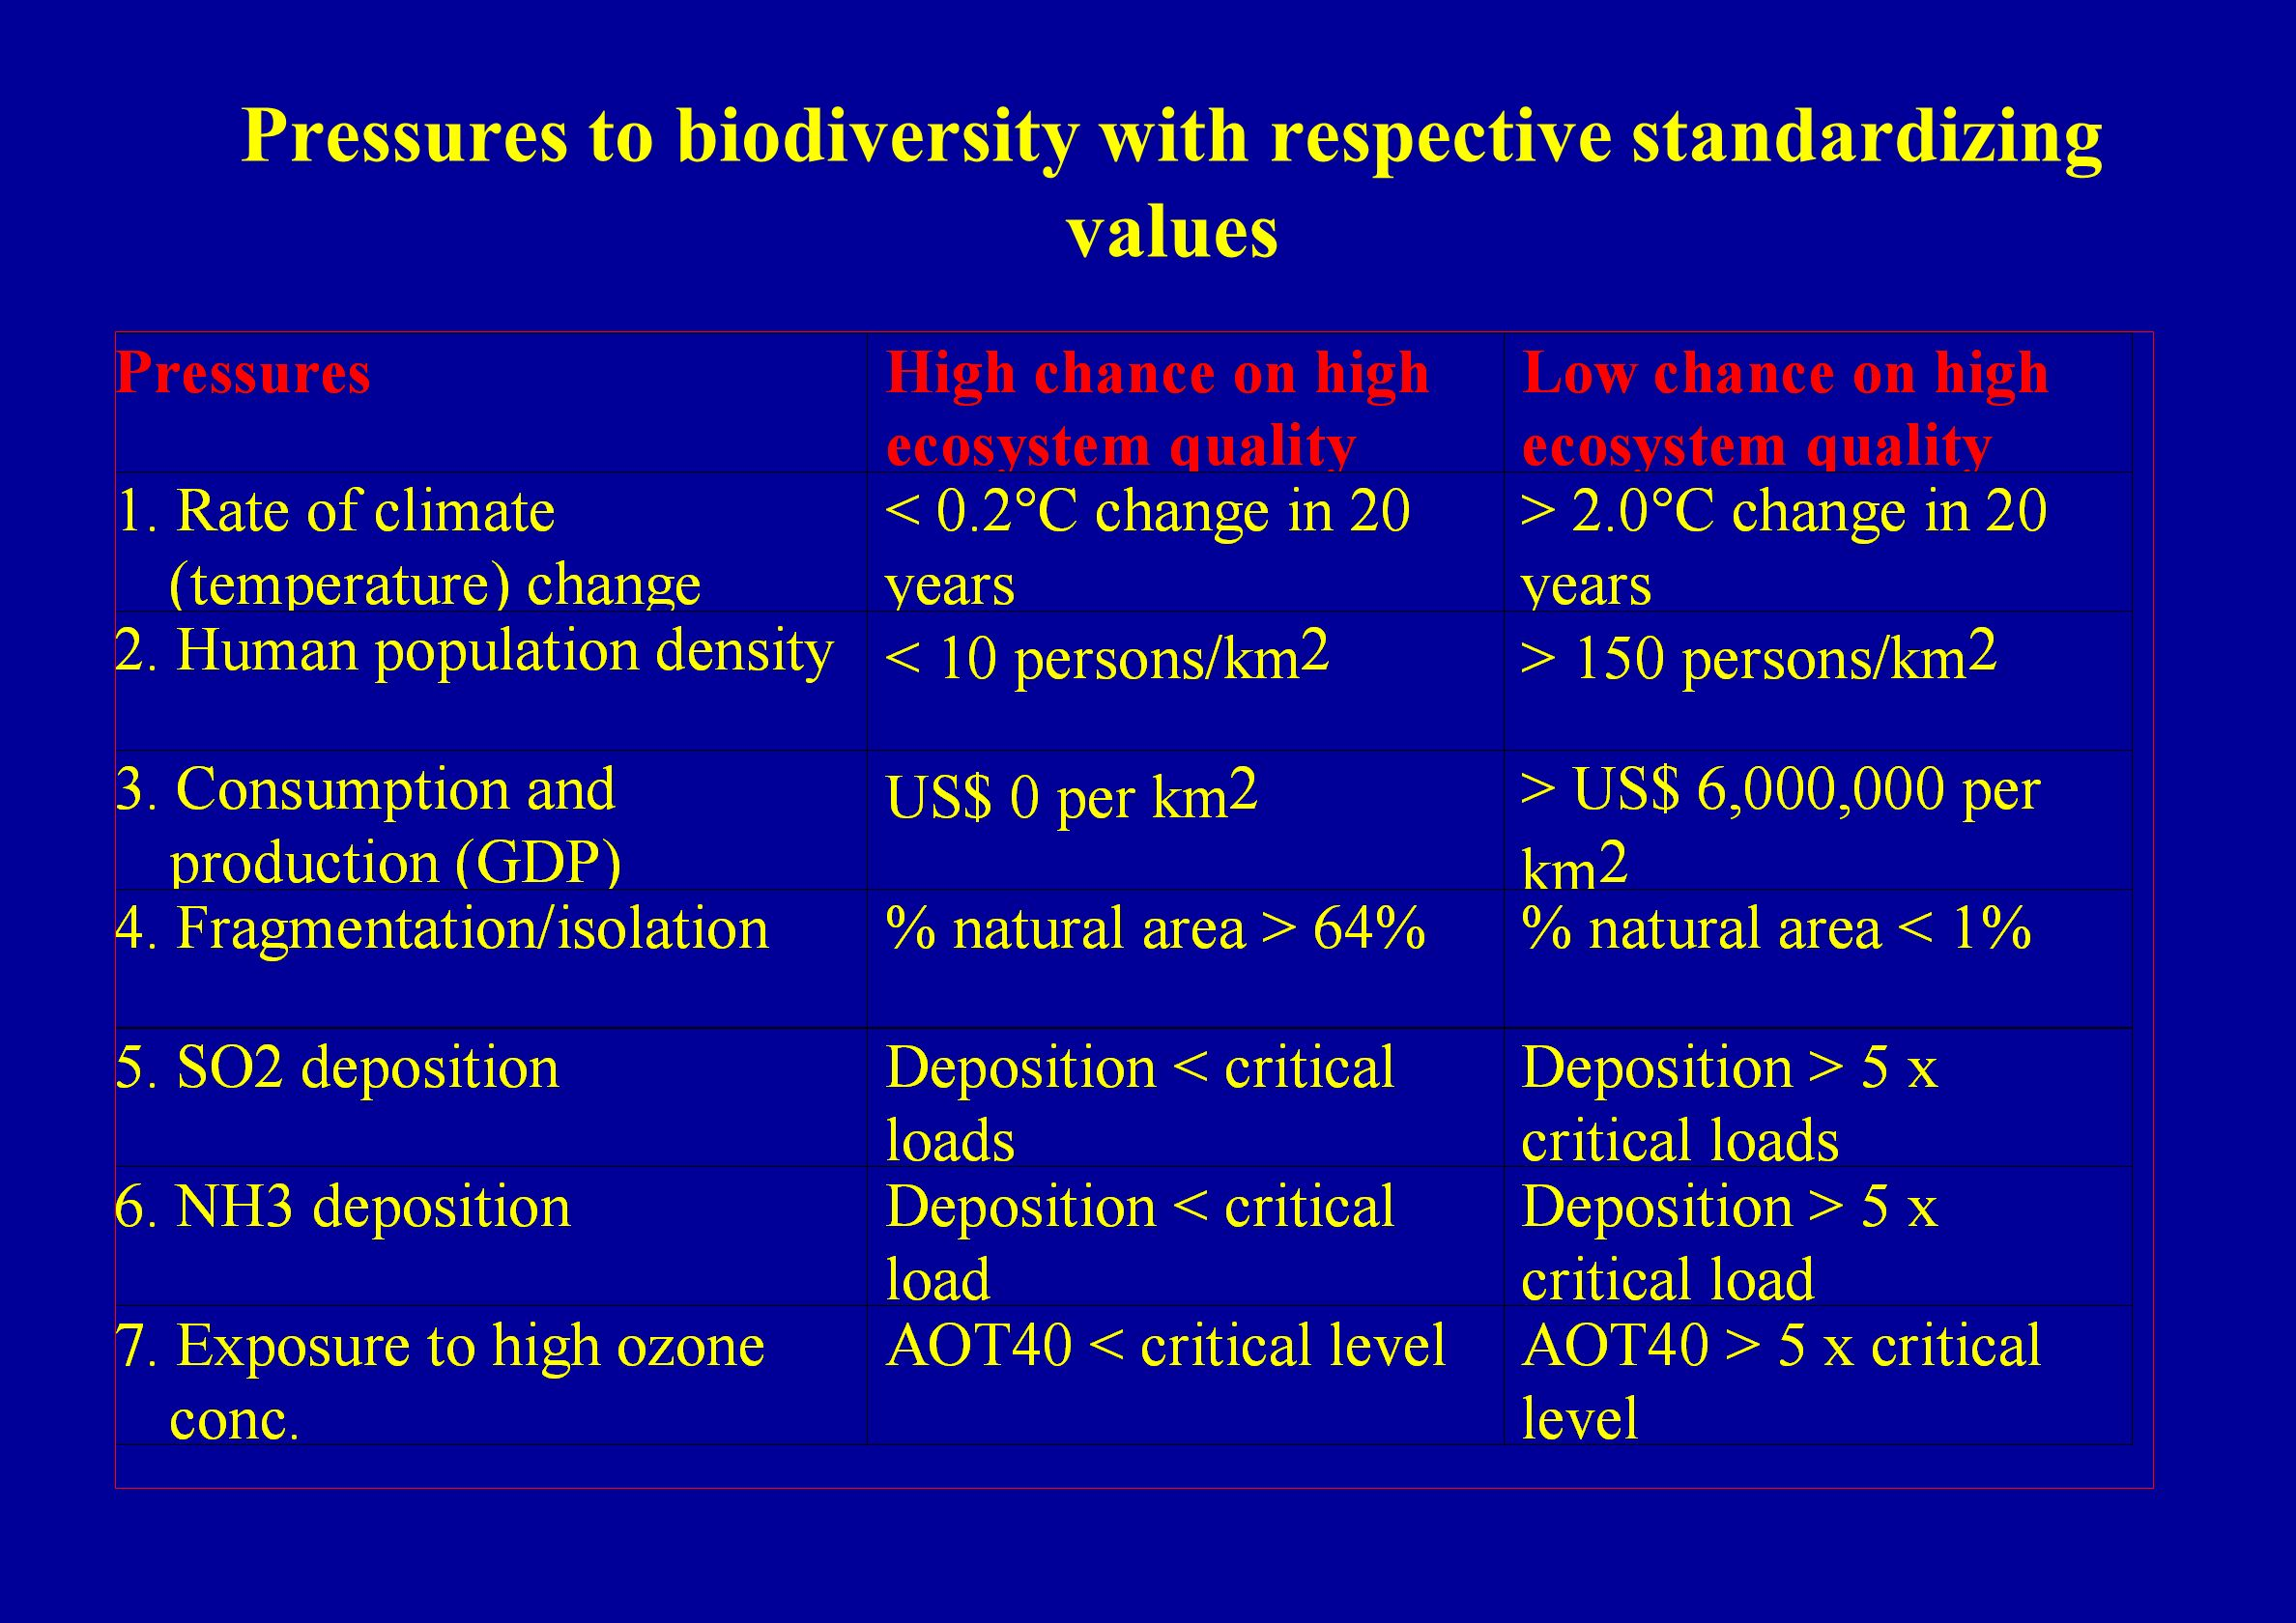 Pressures to biodiversity with respective standardizing values